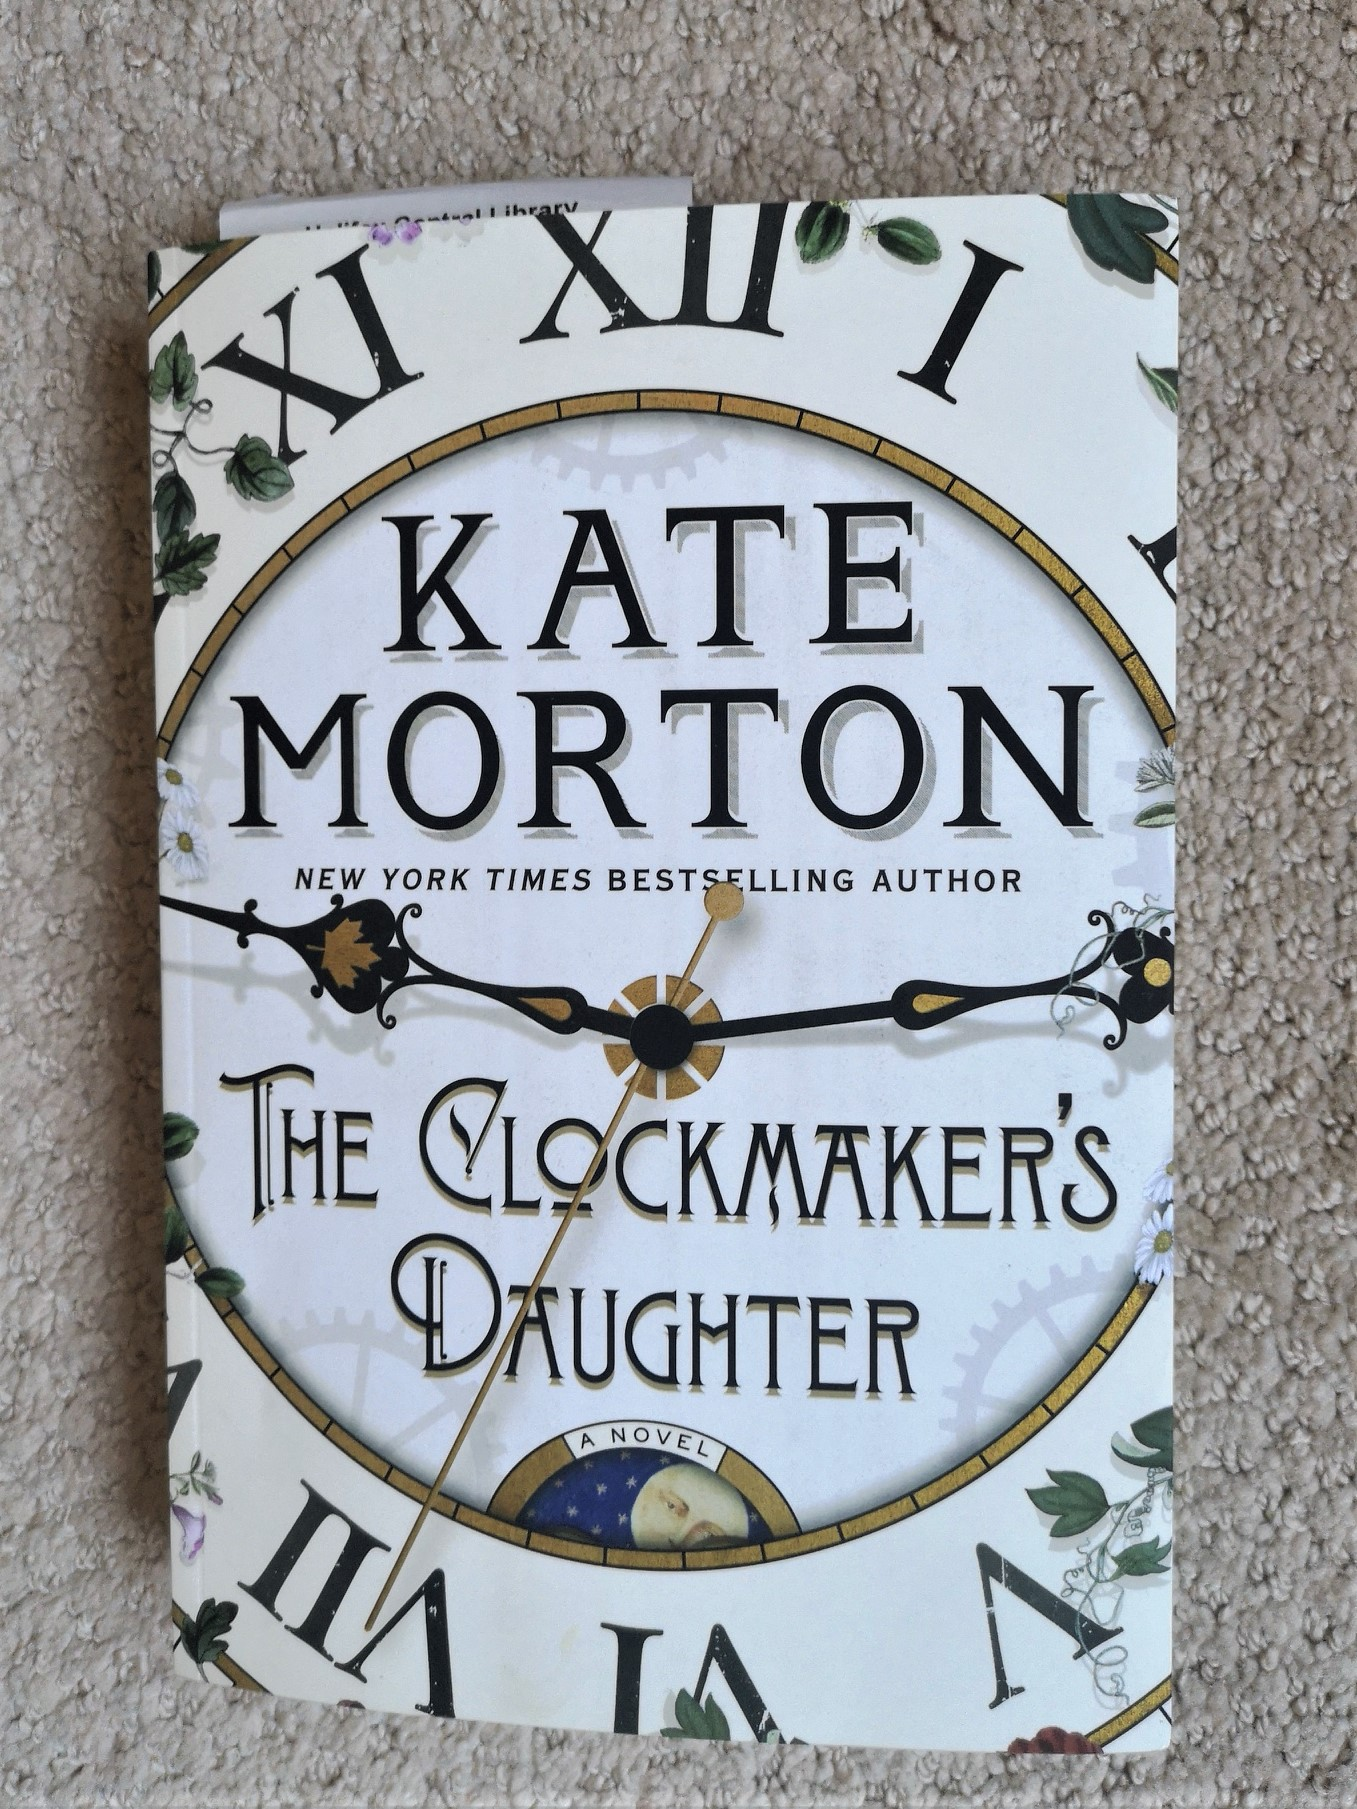 Book club The Clockmaker's Daughter